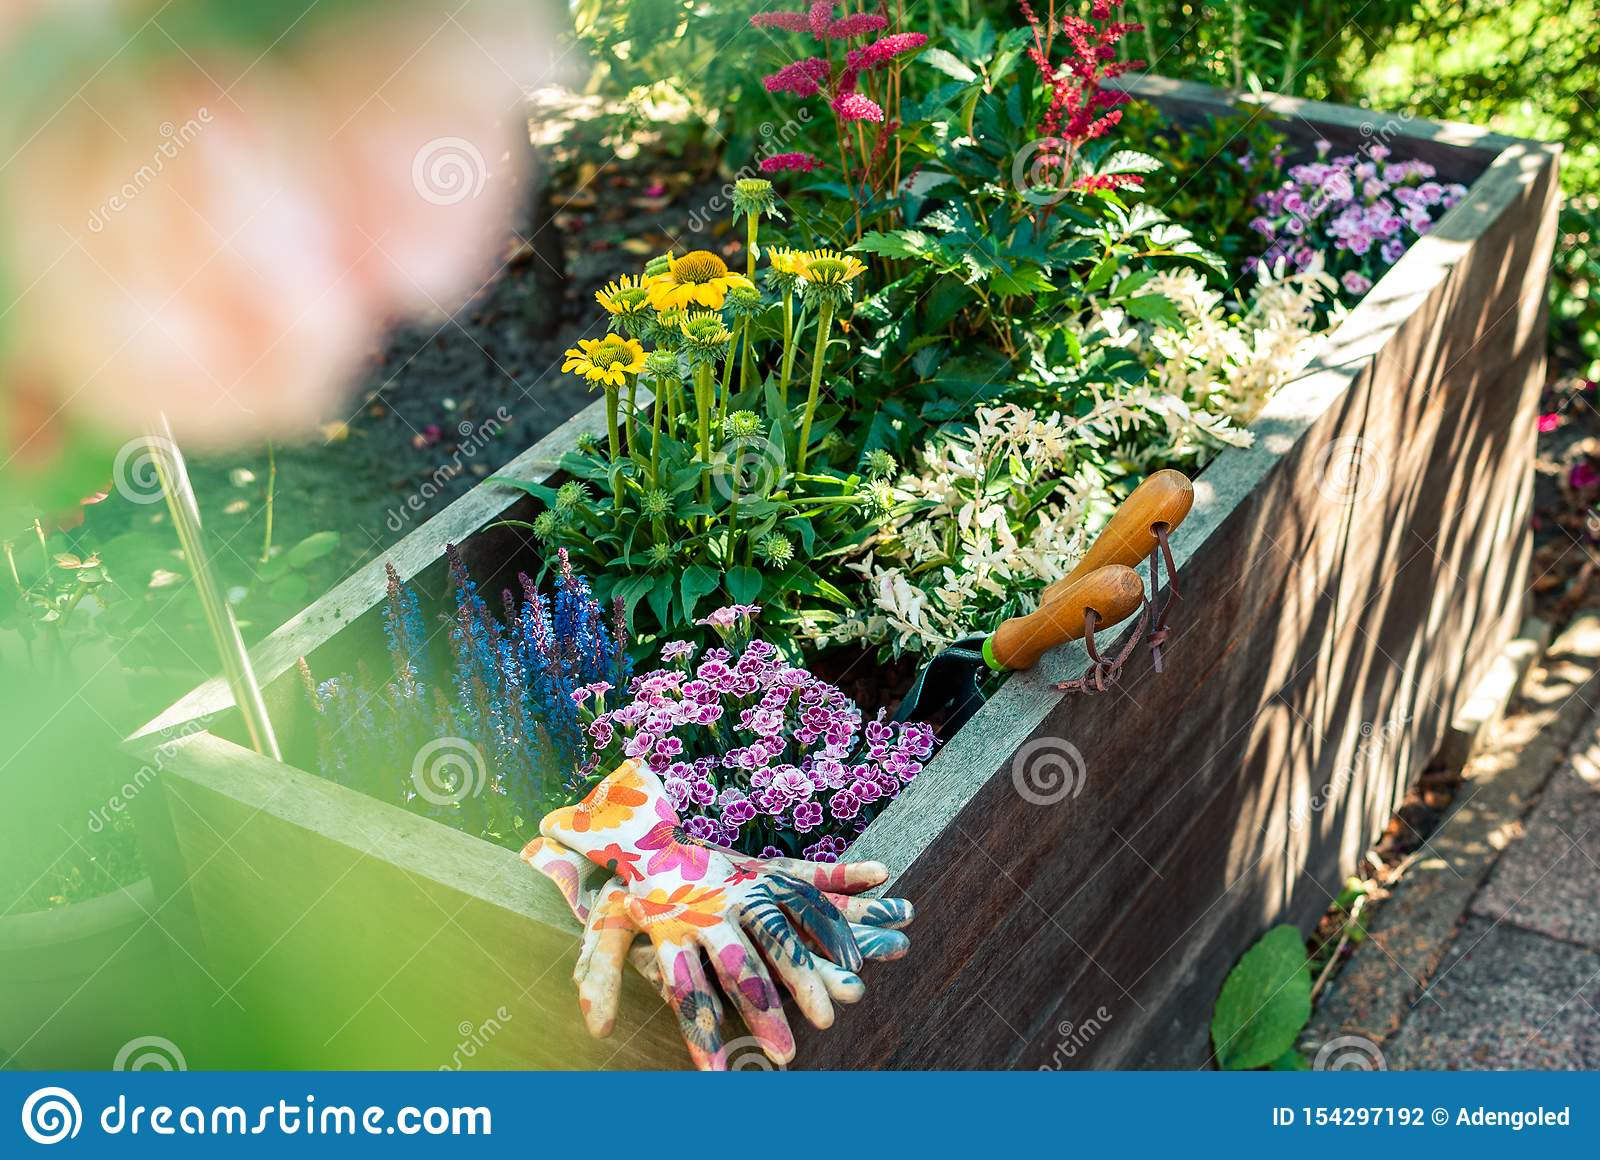 Freshly Planted Planter With Gardening Tools Planter Ideas Gardening Concept Stock Photo Image Of Echinacea Green 154297192